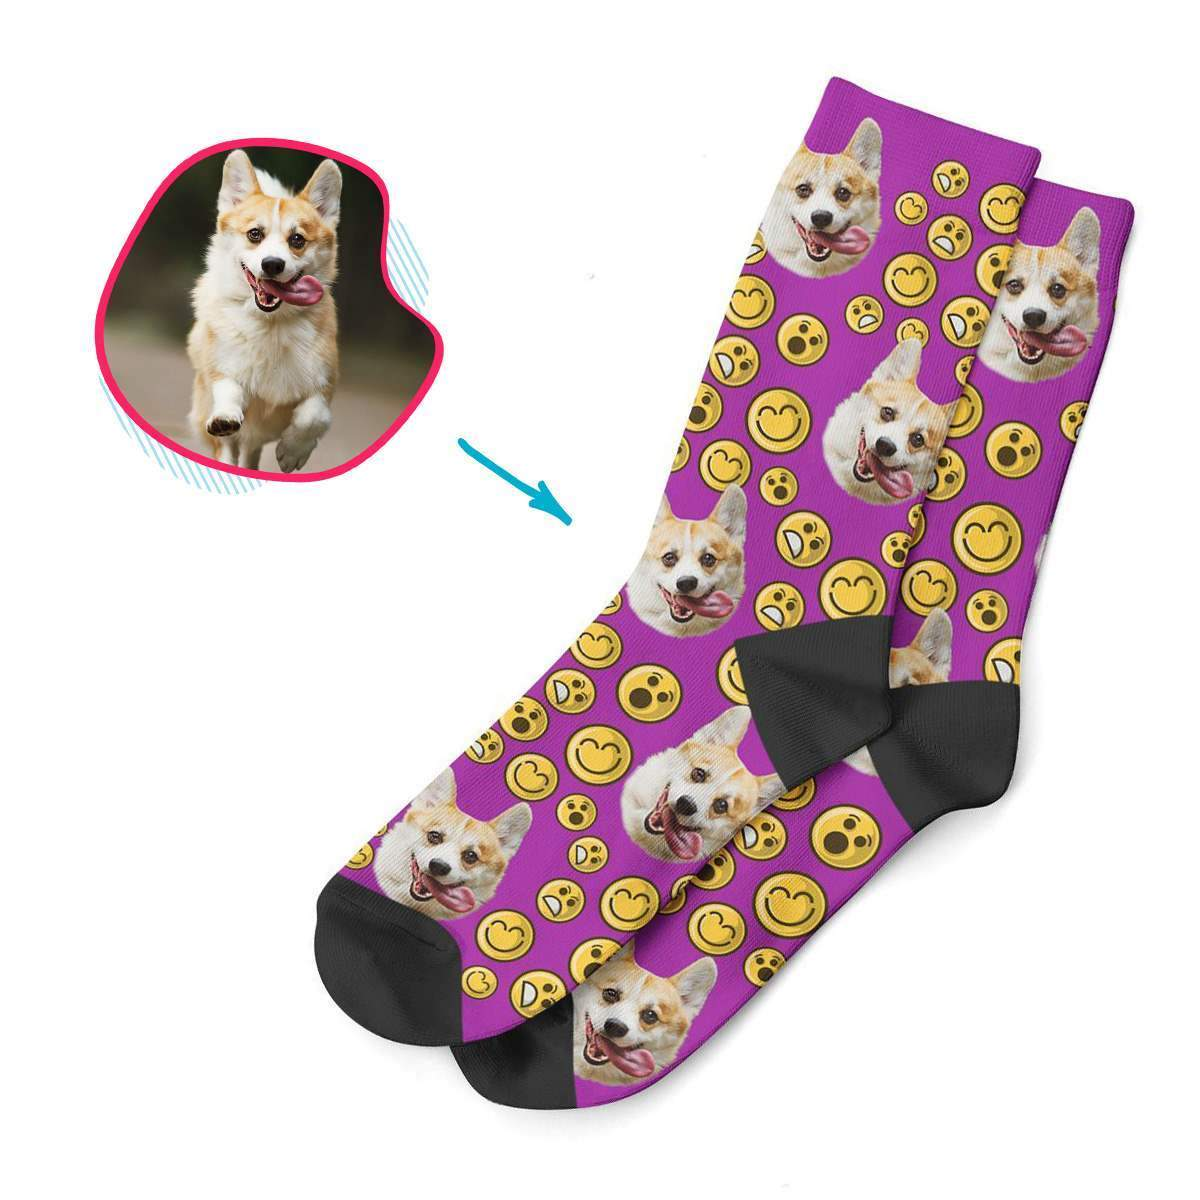 purple Smiles socks personalized with photo of face printed on them